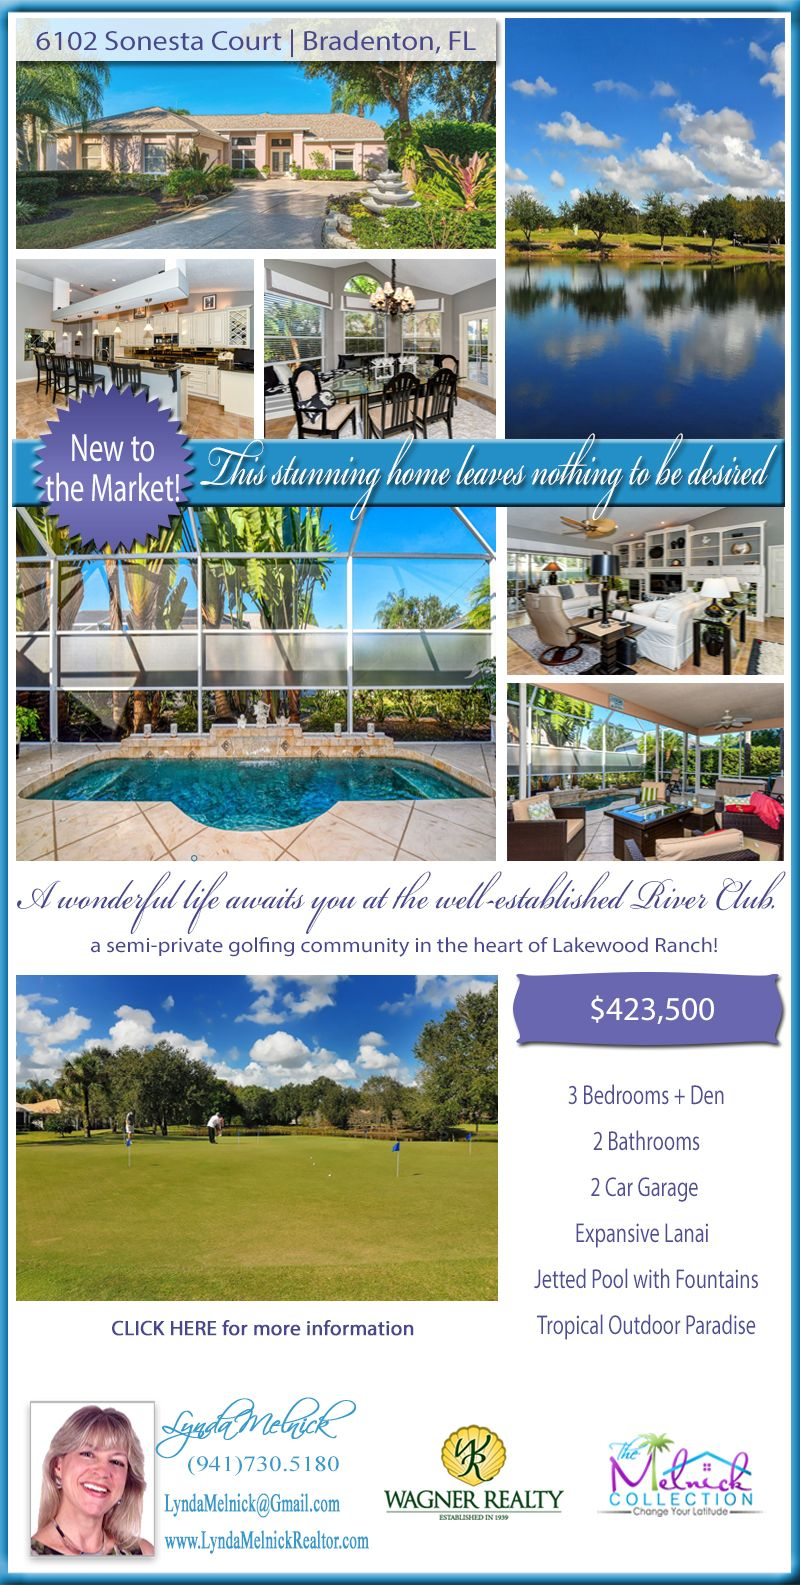 JUST LISTED Stunning home in River Club, a semiprivate